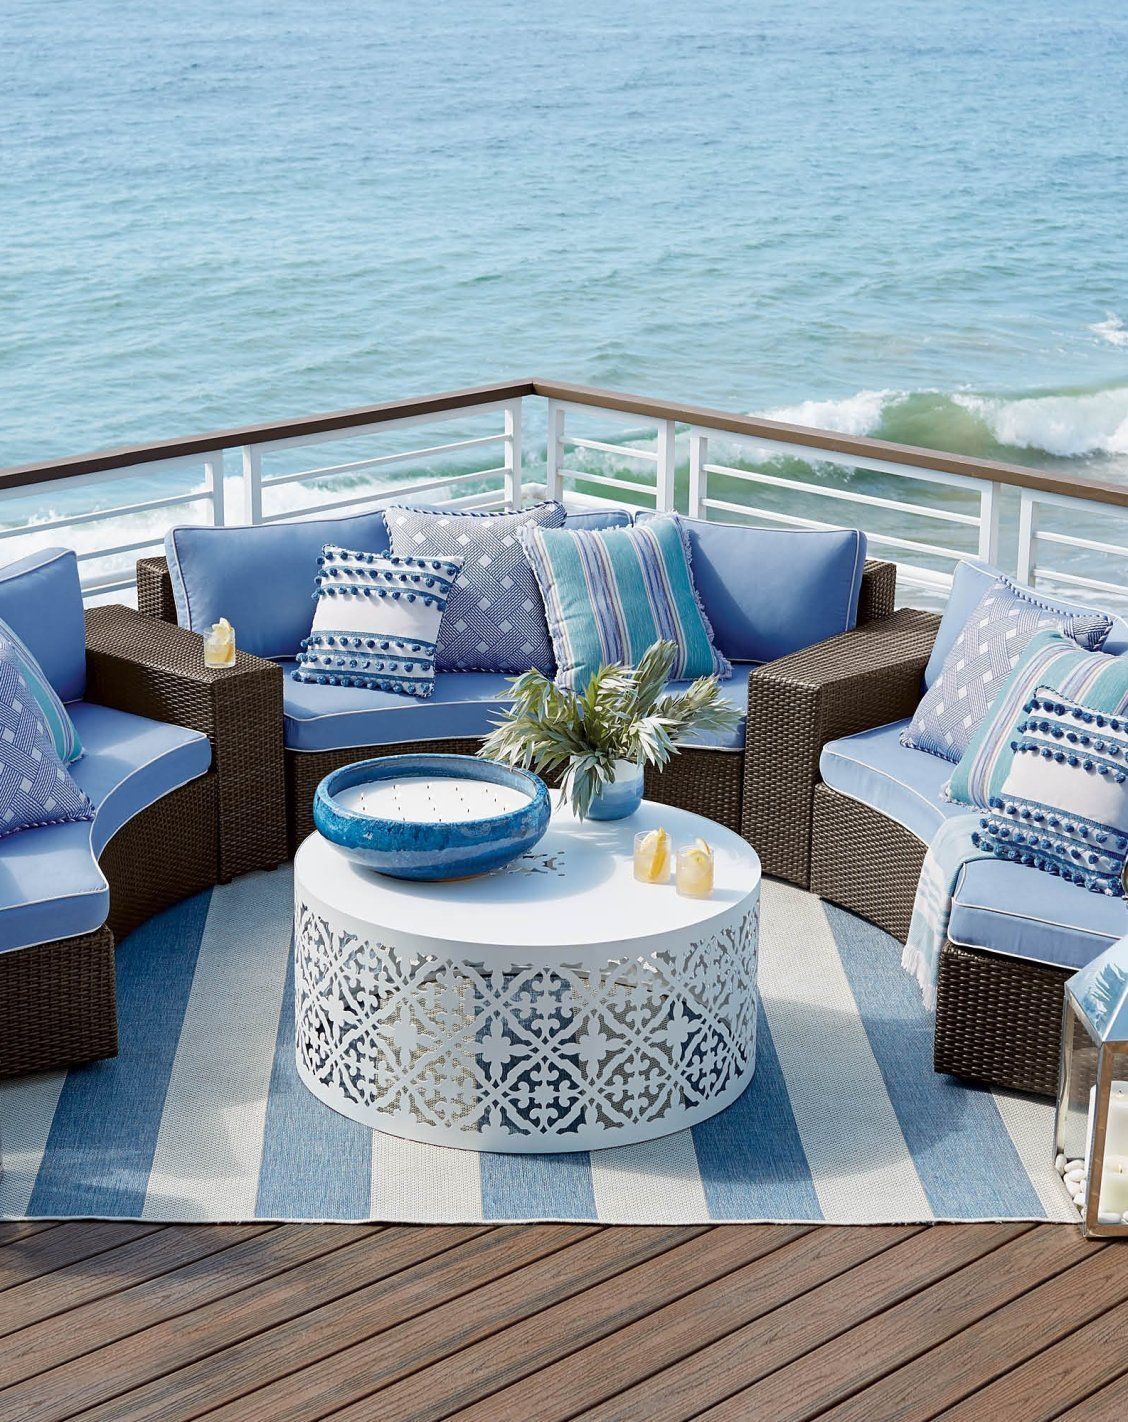 Comfortable Cushioned Pieces In Circular Formation Make It Easy For The Pasadena Modular Collection To Create Ultimate Open Air Chat Room